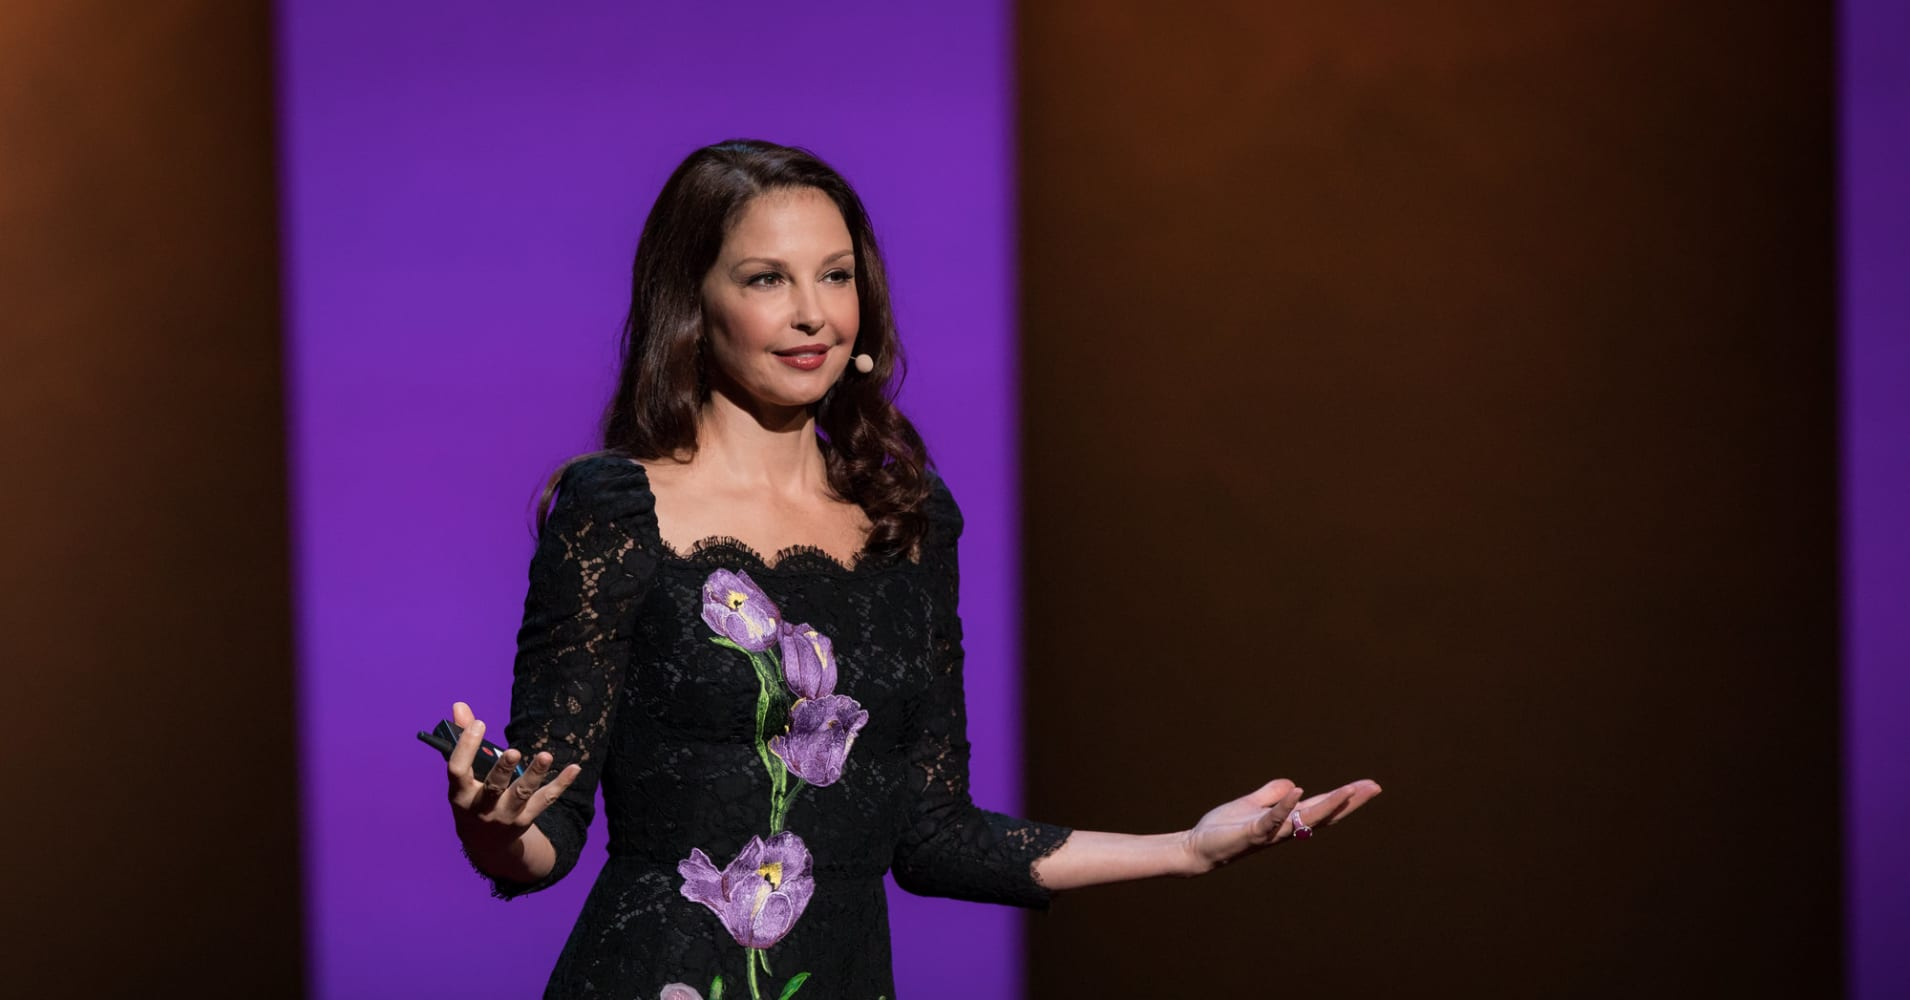 Ashley Judd sues Weinstein saying he wrecked her career